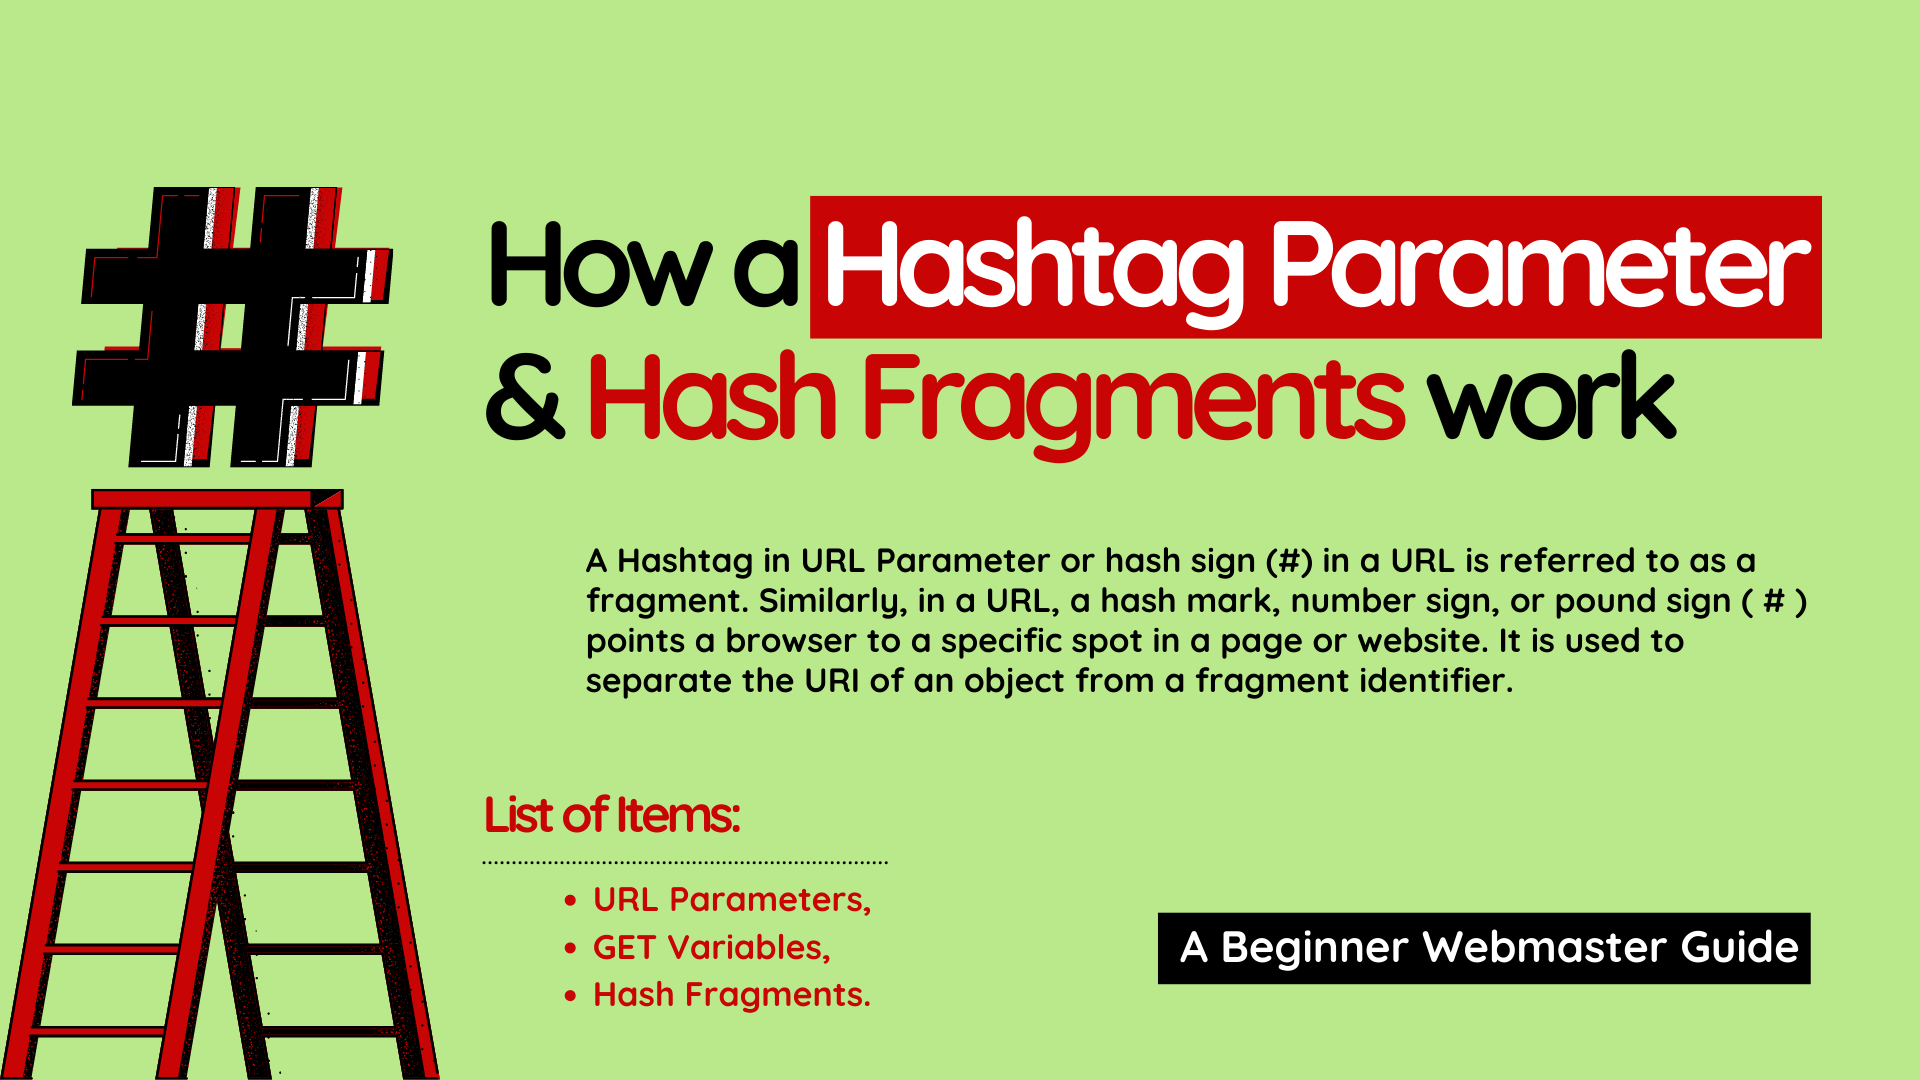 What does Hashtag in URL Parameter mean?